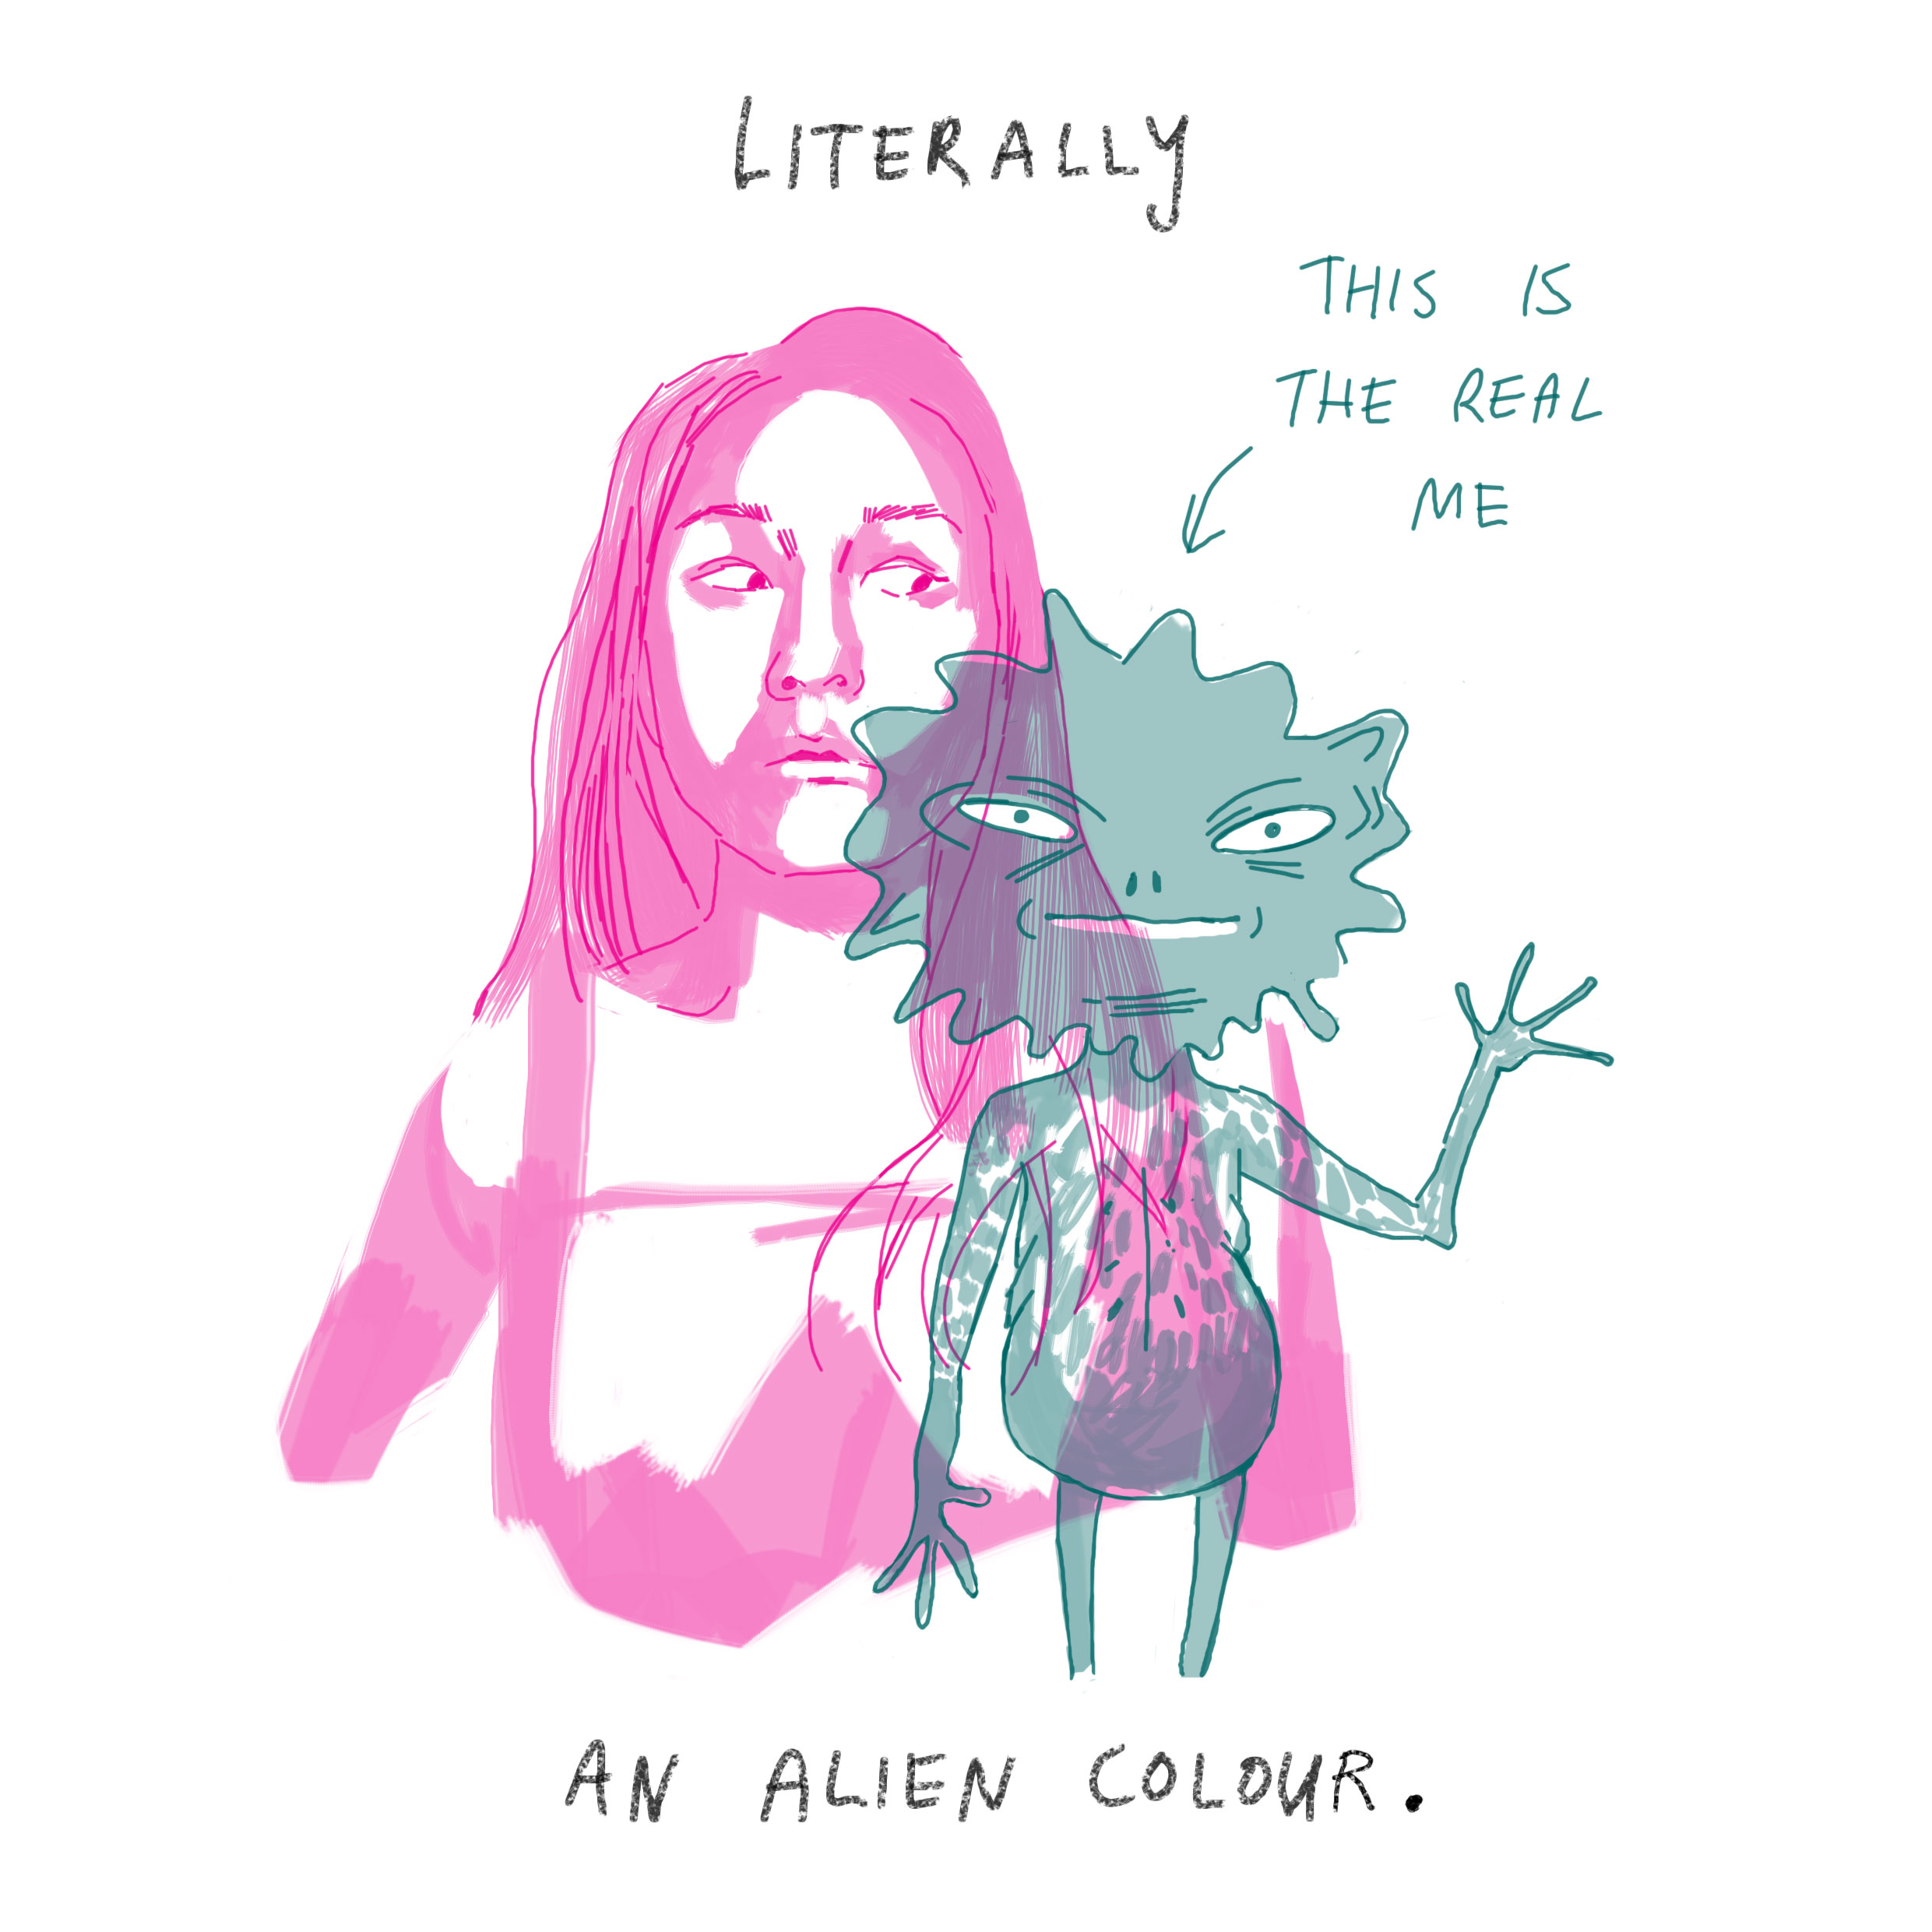 '… literally an alien colour.' (Drawing of an alien shadowed over a woman, with an arrow pointing from the text, 'this is the real me')